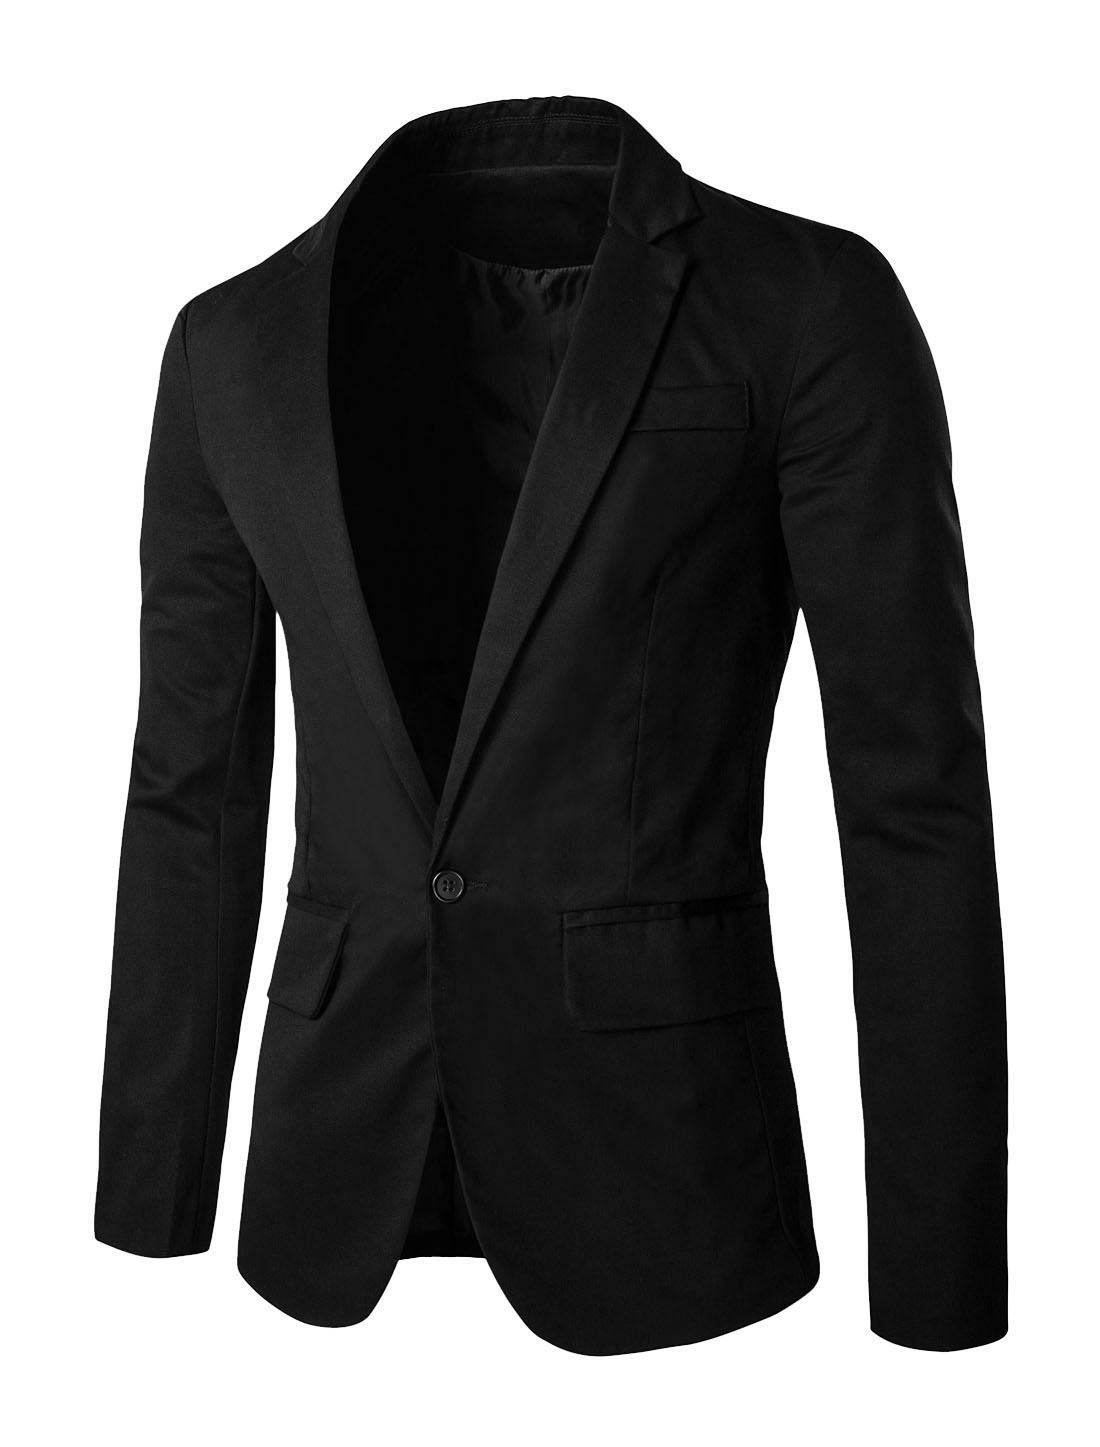 Men Notched Lapel One Button Closure Flap Pockets Casual Blazer Black M